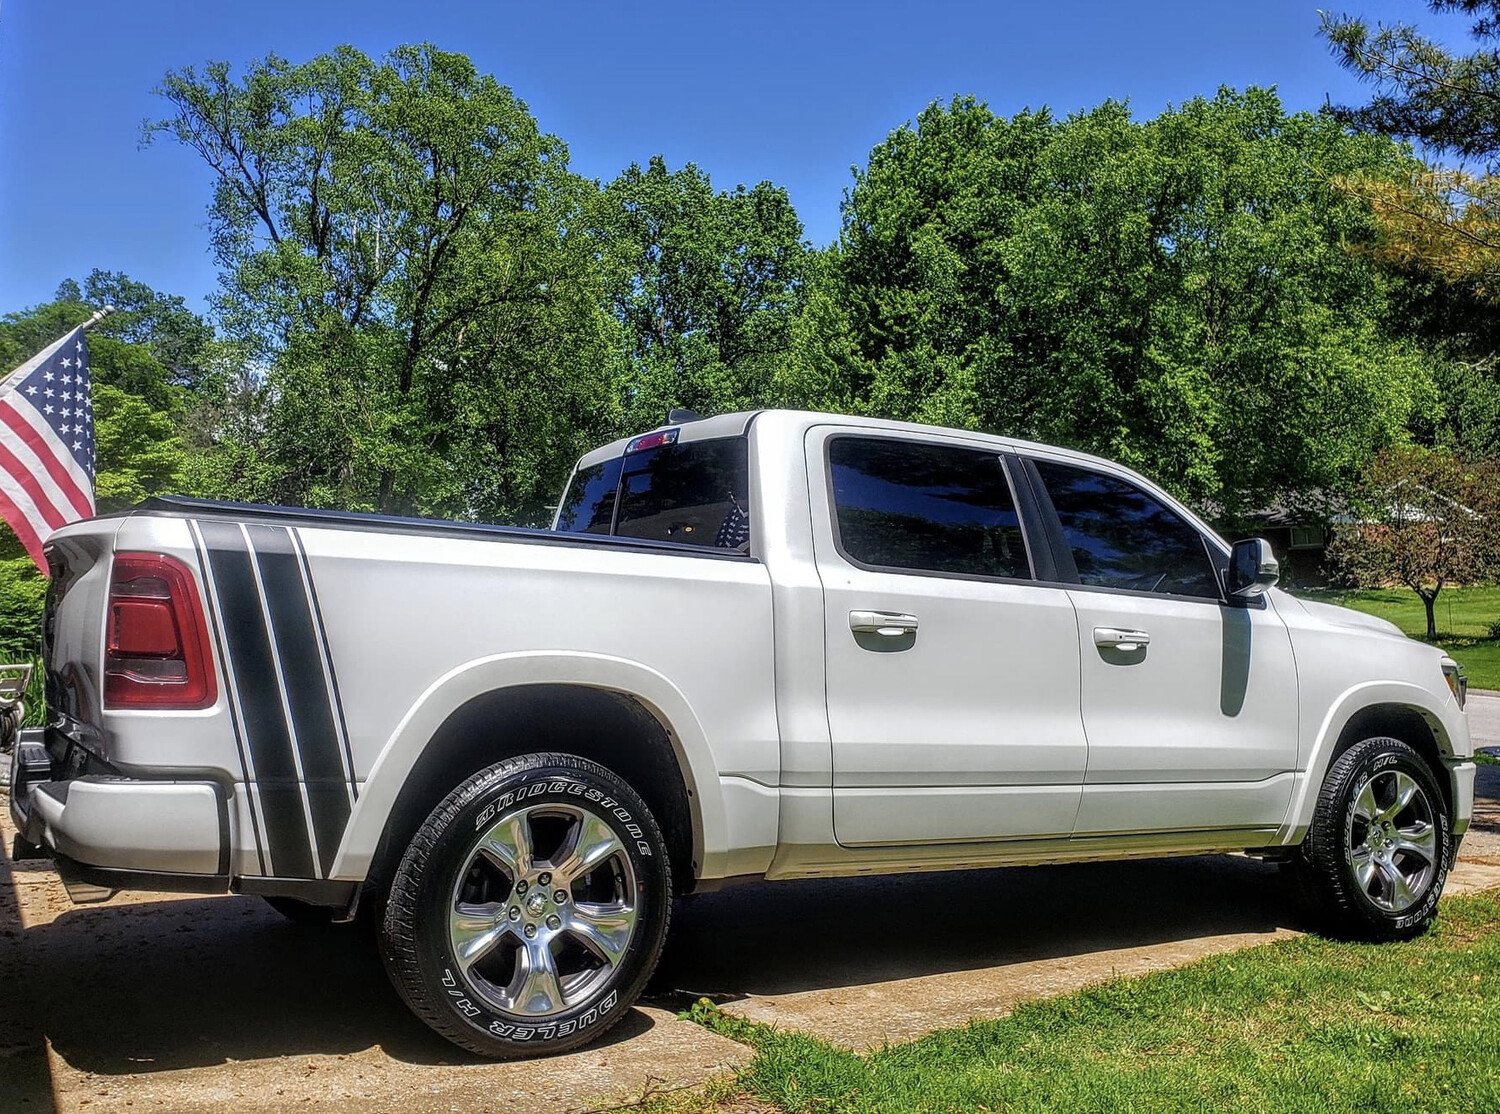 2019 - Up Dodge Ram Bedside Tail Bumblebee Stripes